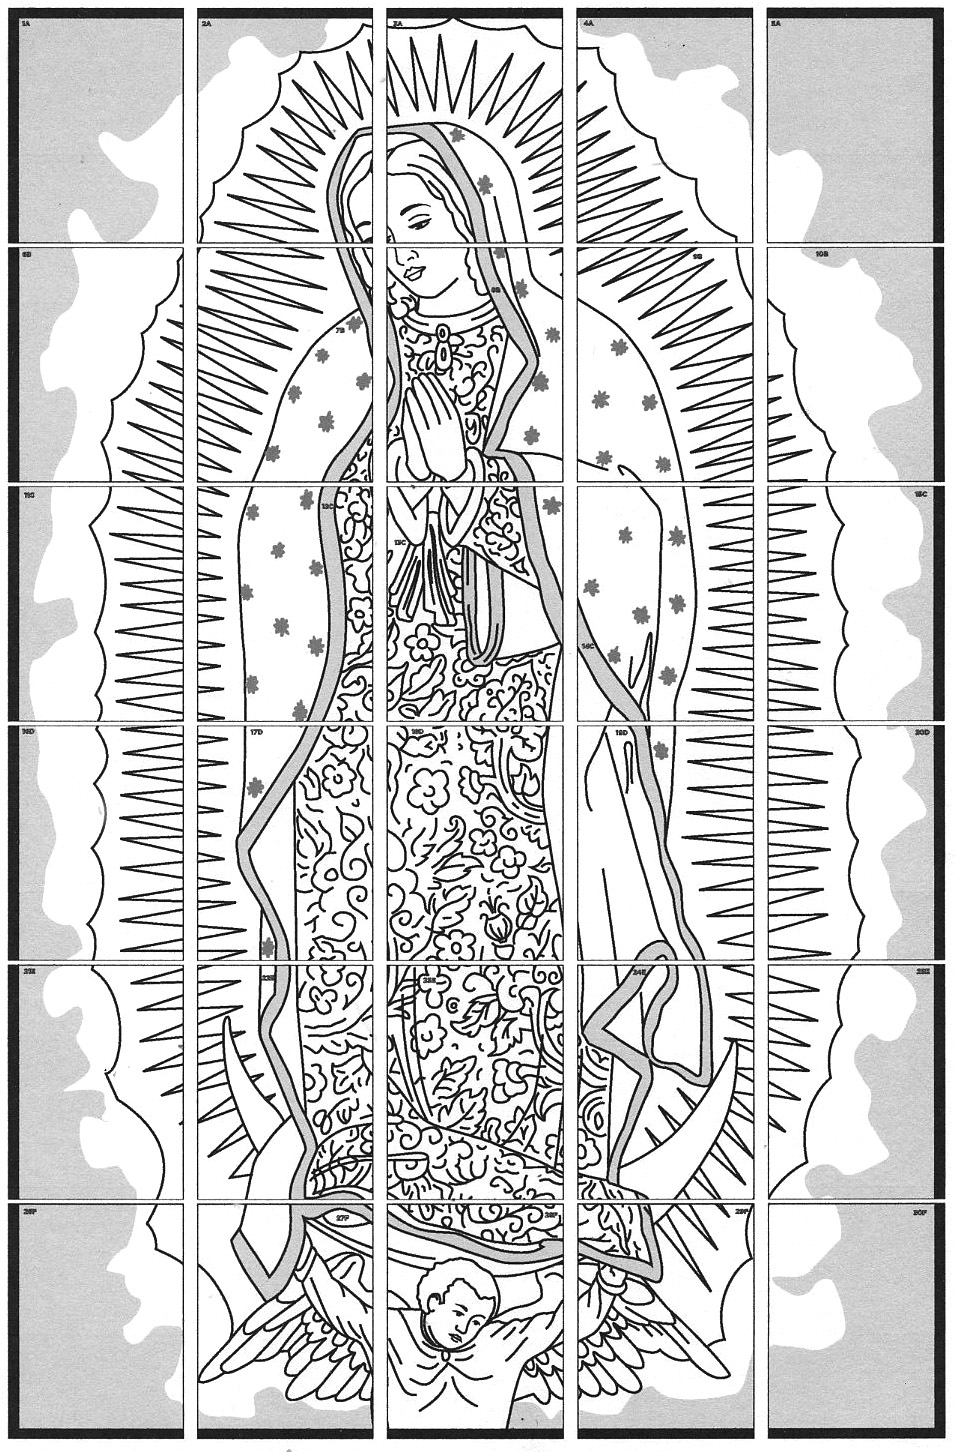 guadalupe black single women Memorare of our lady of guadalupe (to be prayed each day) remember, o most gracious virgin of guadalupe, that in your heavenly apparitions on the mount of tepeyac, .